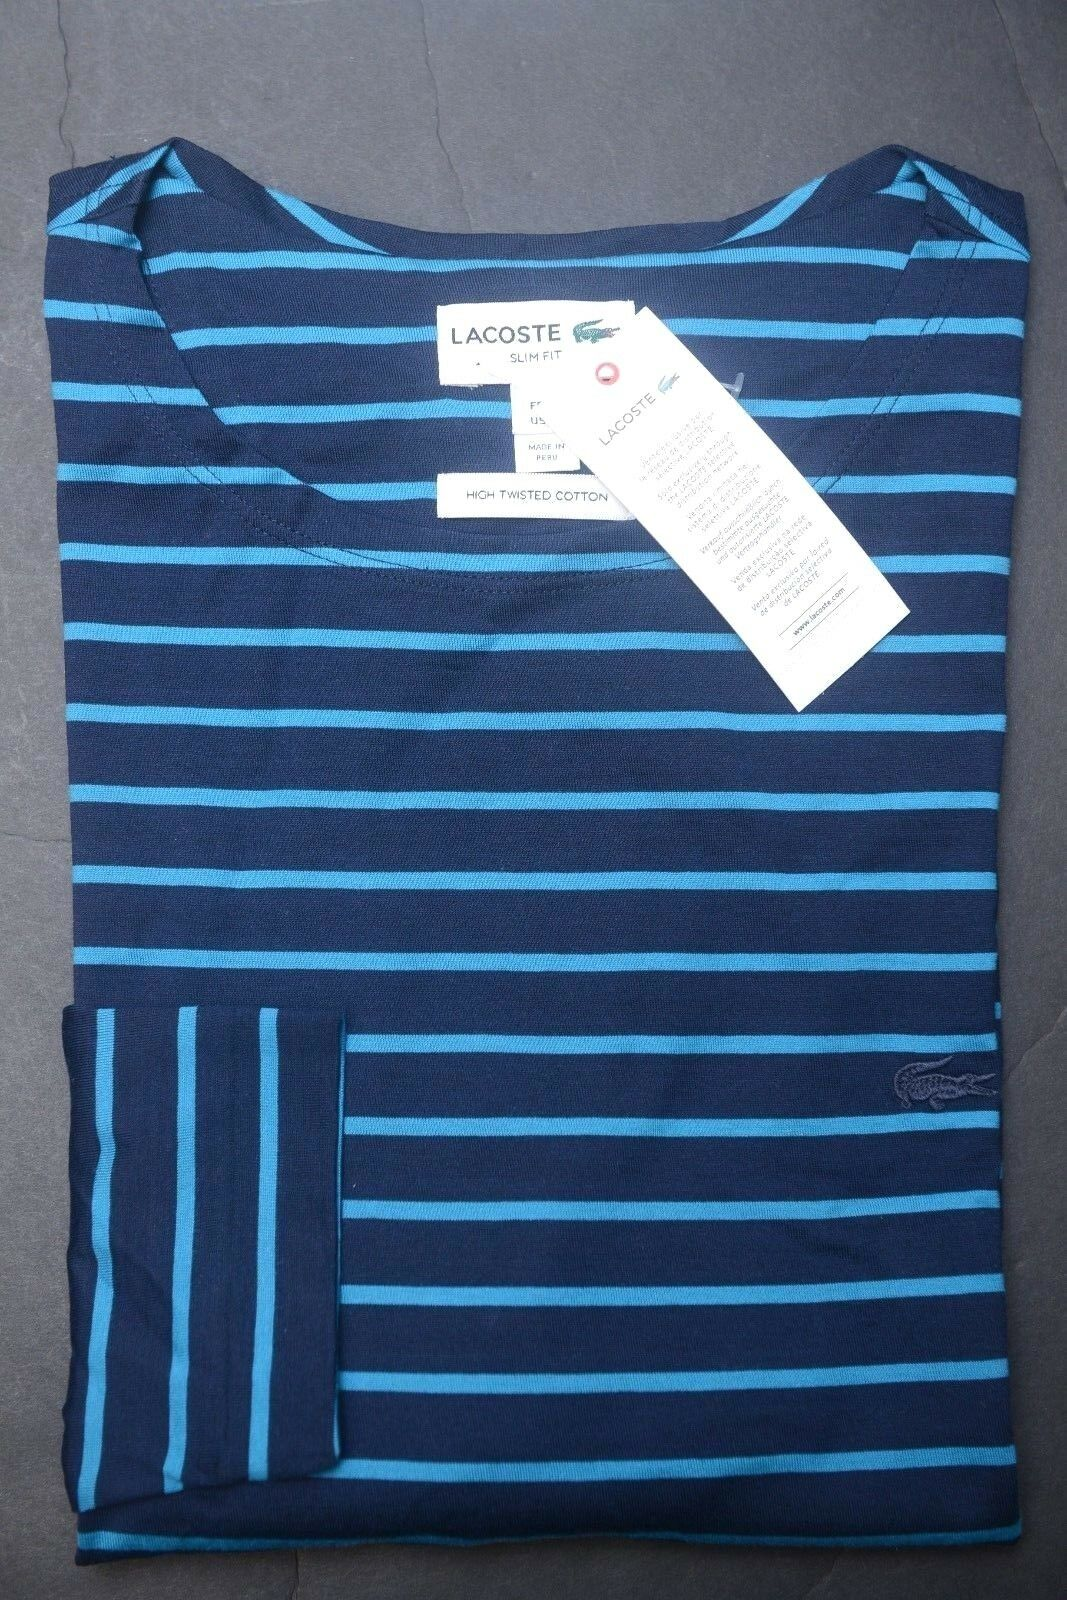 Lacoste Men's Slim Fit bluee Striped High Twisted Cotton Henley Shirt S